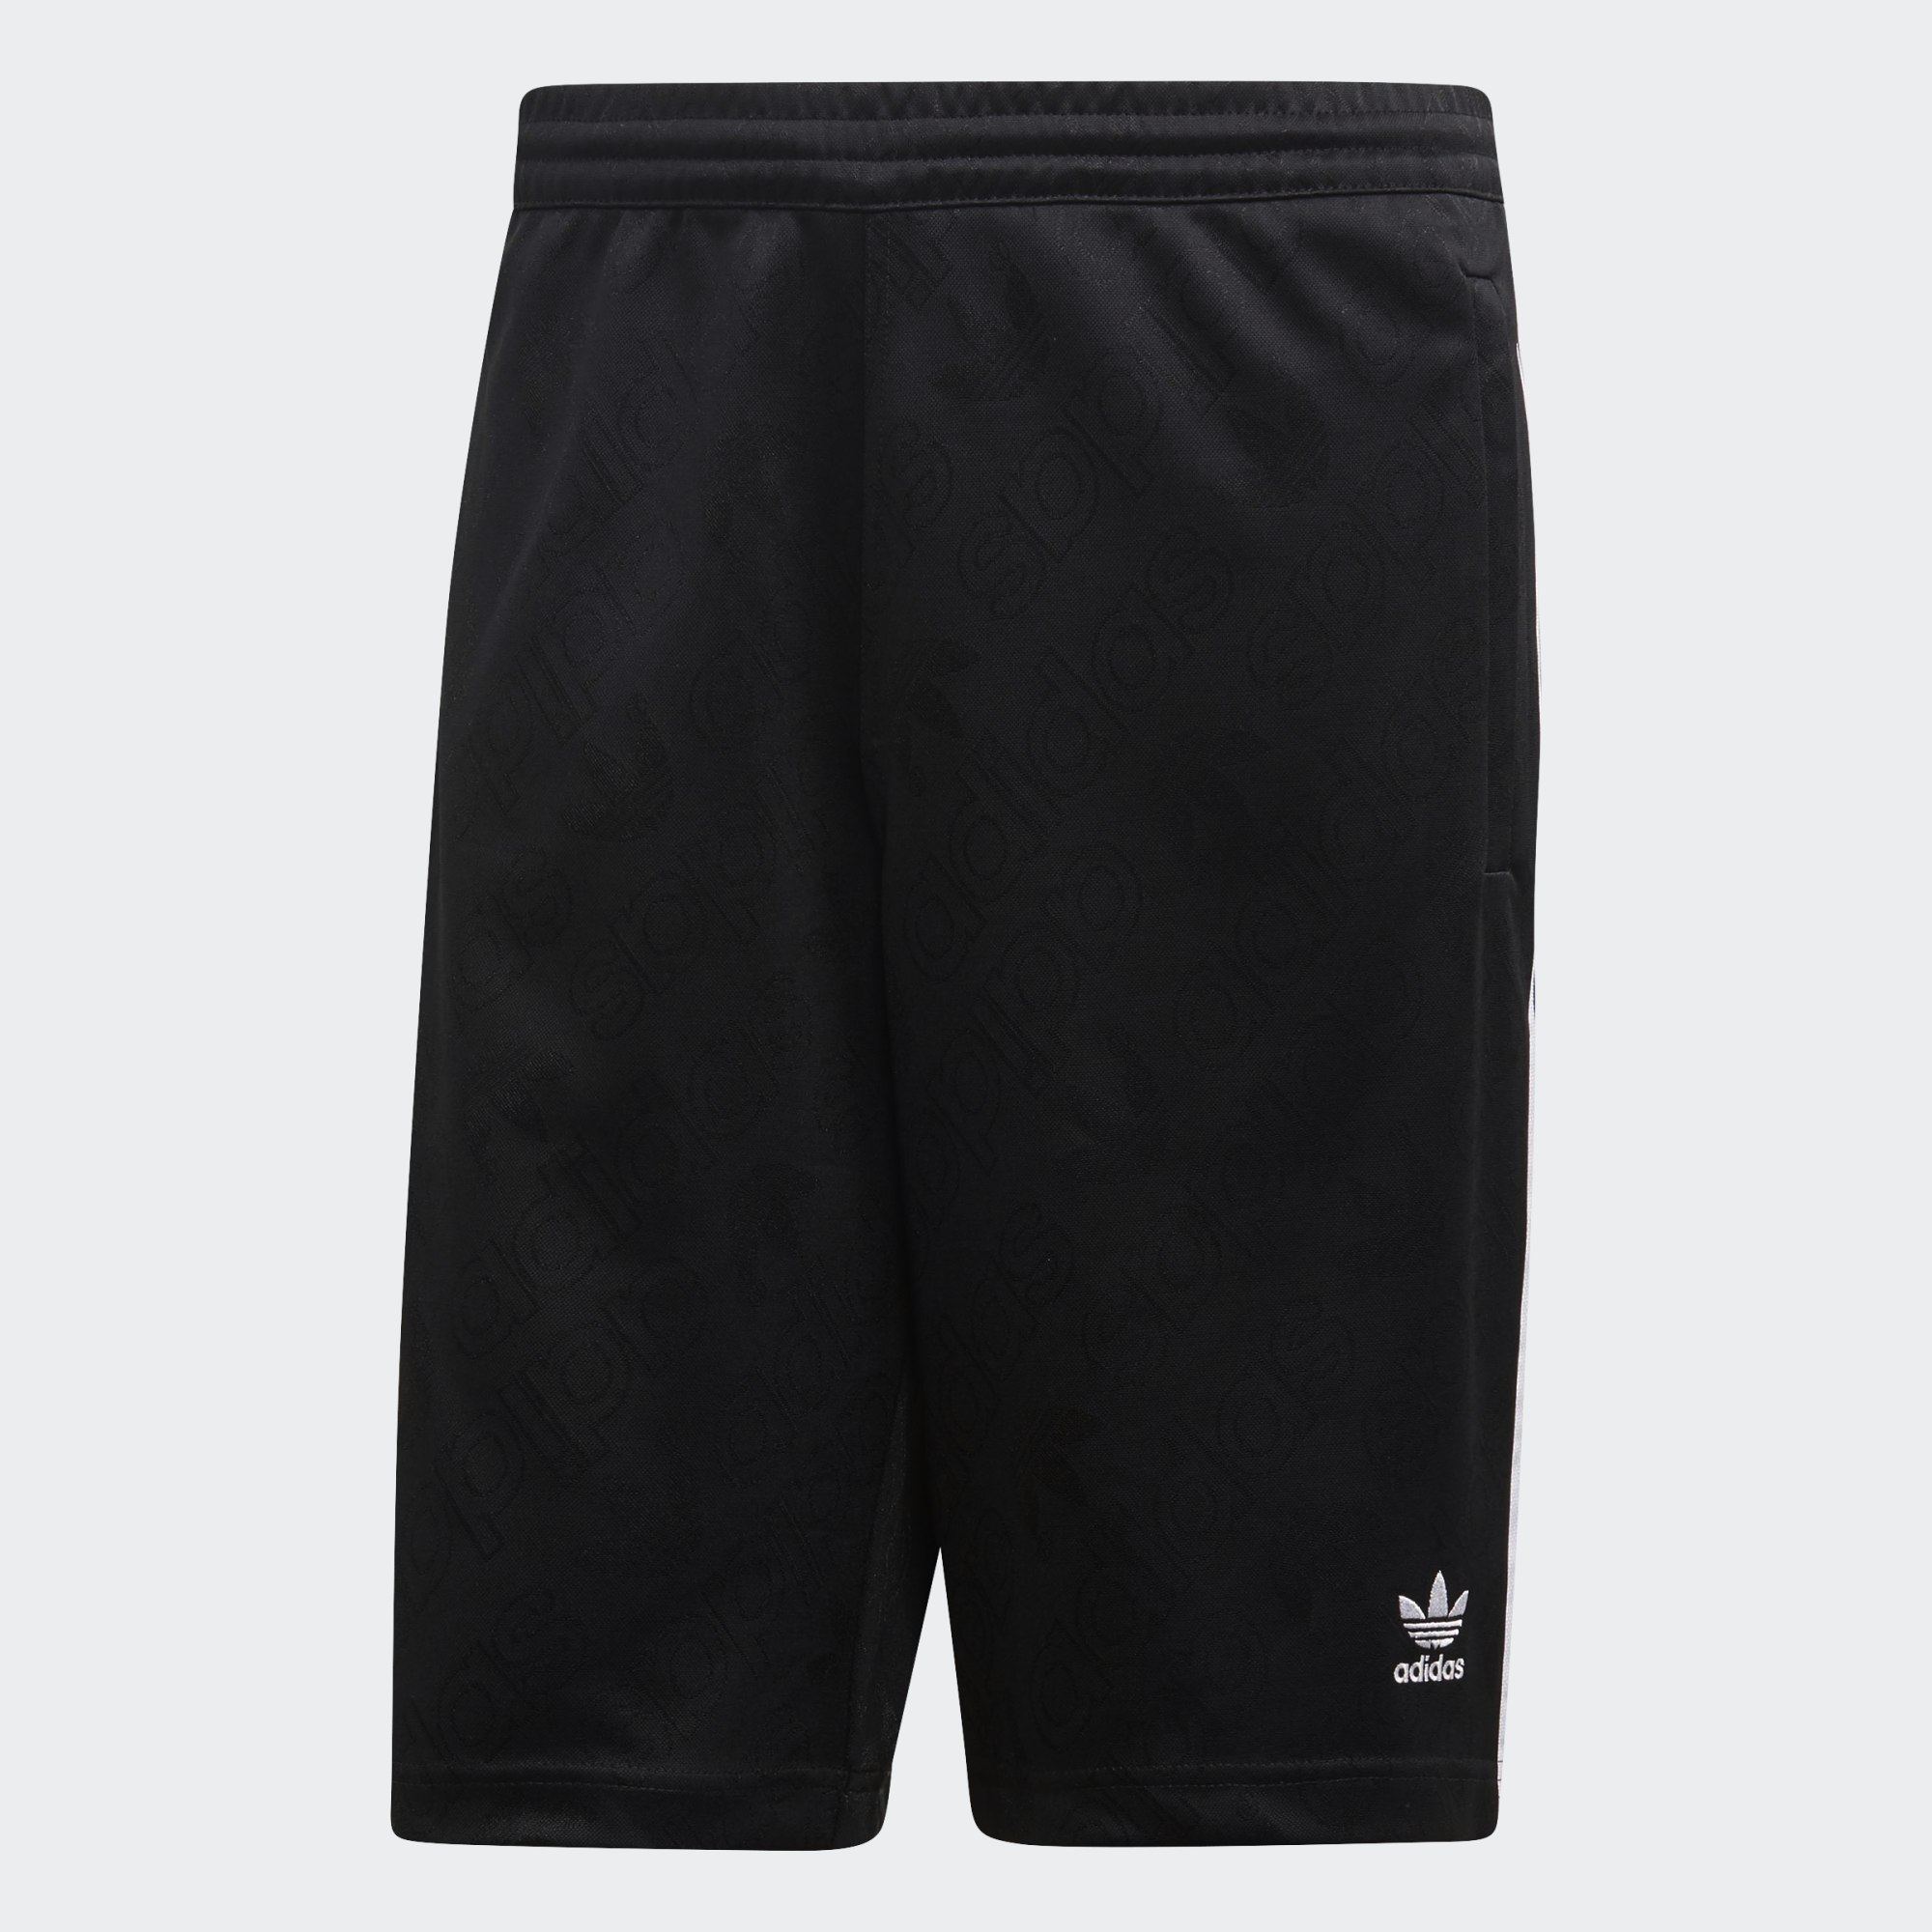 Adidas MONOGRAM SHORTS Ed7048 ( Form Á )